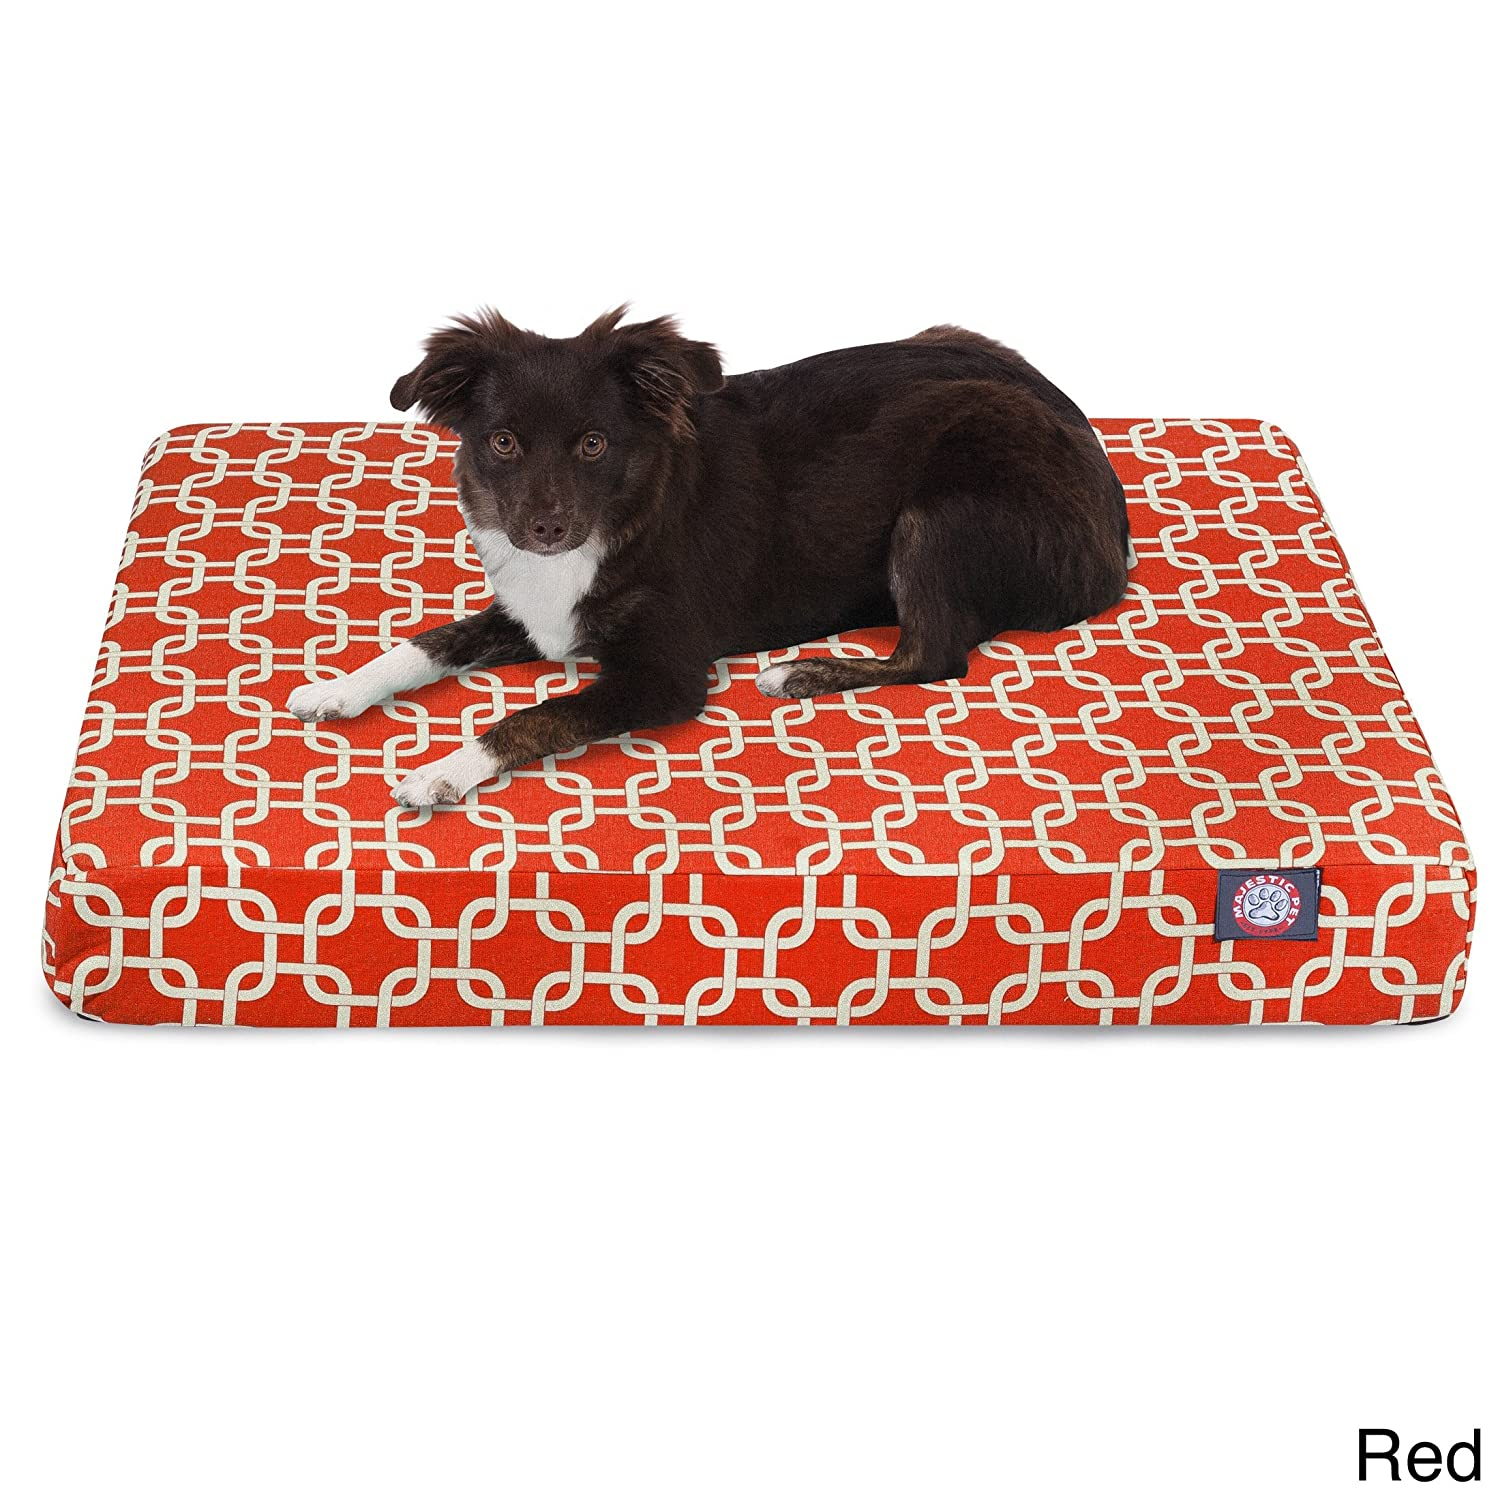 Majestic Pet Products Majestic Pet Links Orthopedic Memory Foam Rectangle Dog Bed Red Medium 85%OFF